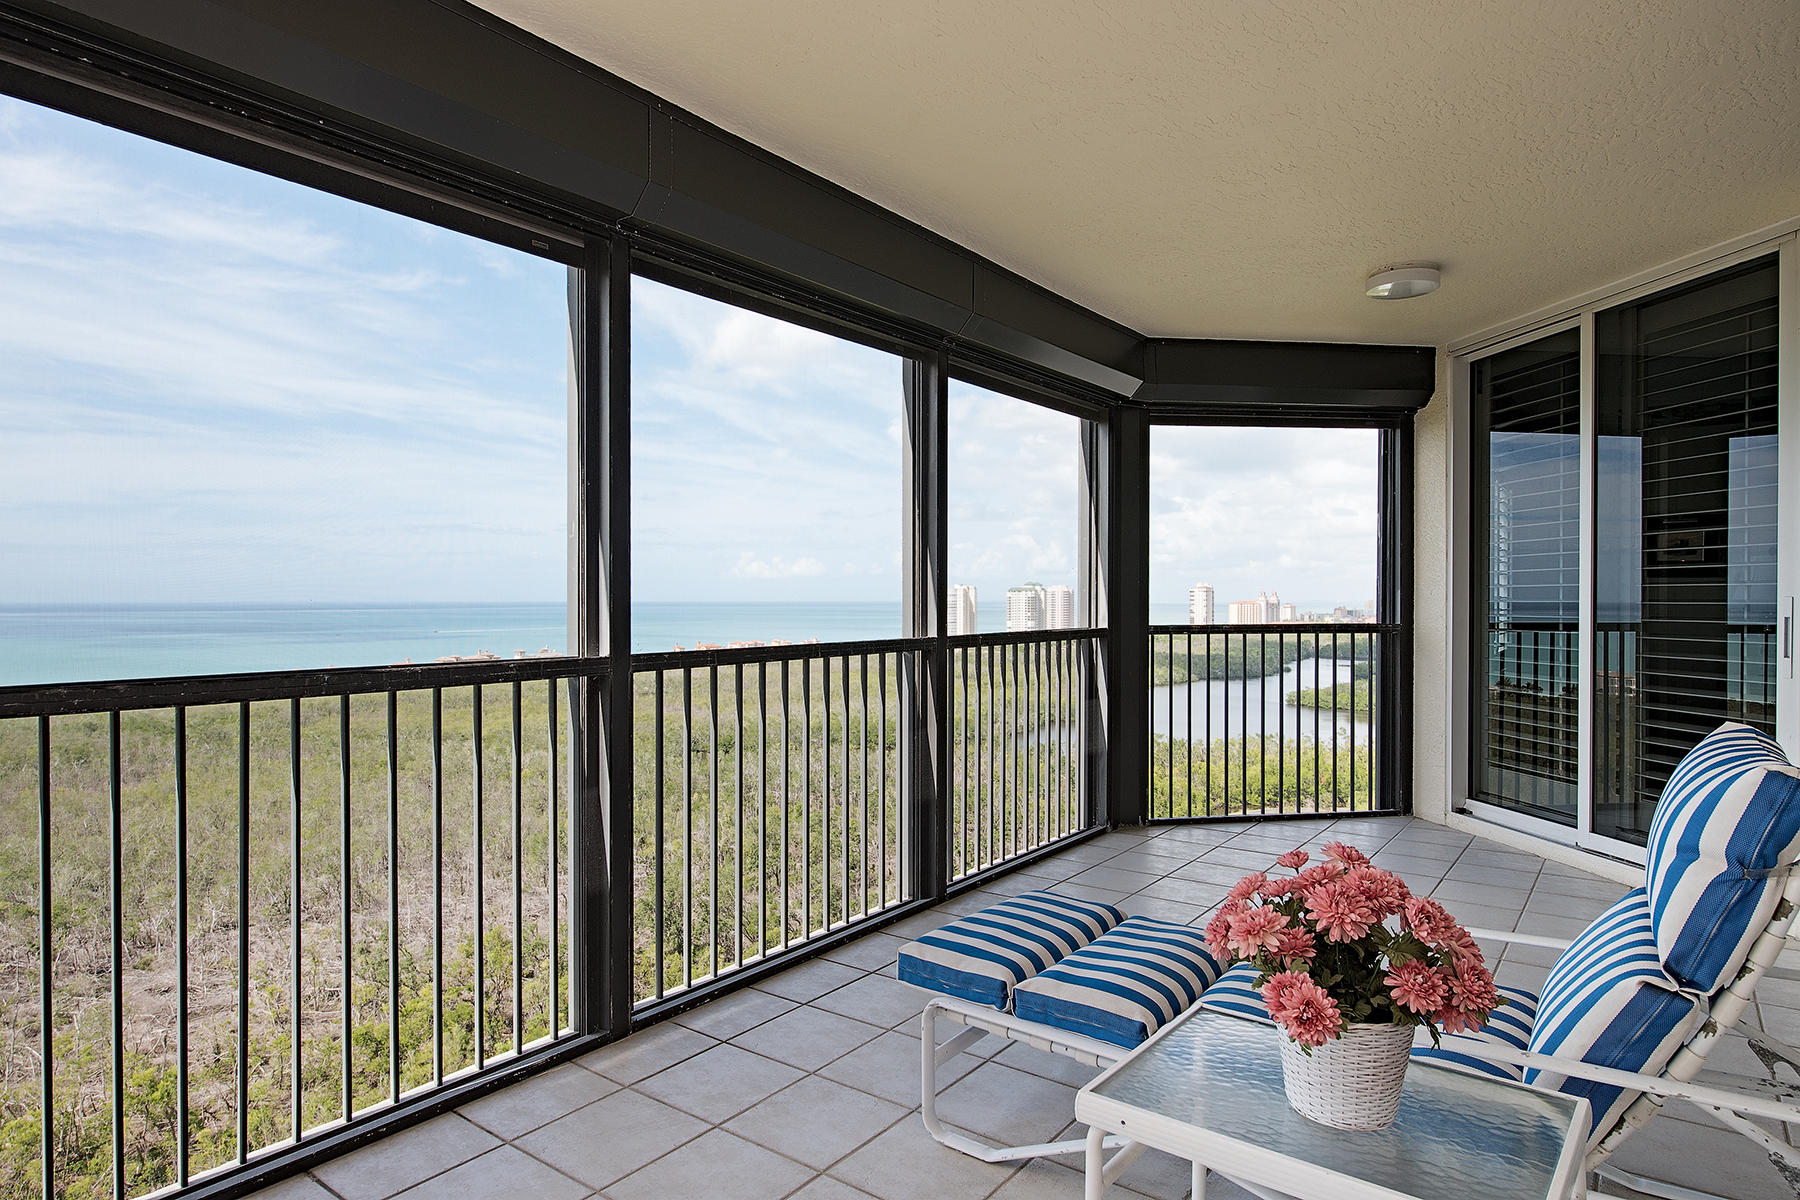 Condominium for Sale at PELICAN BAY - MARBELLA 7425 Pelican Bay Blvd 2004/2005, Naples, Florida 34108 United States